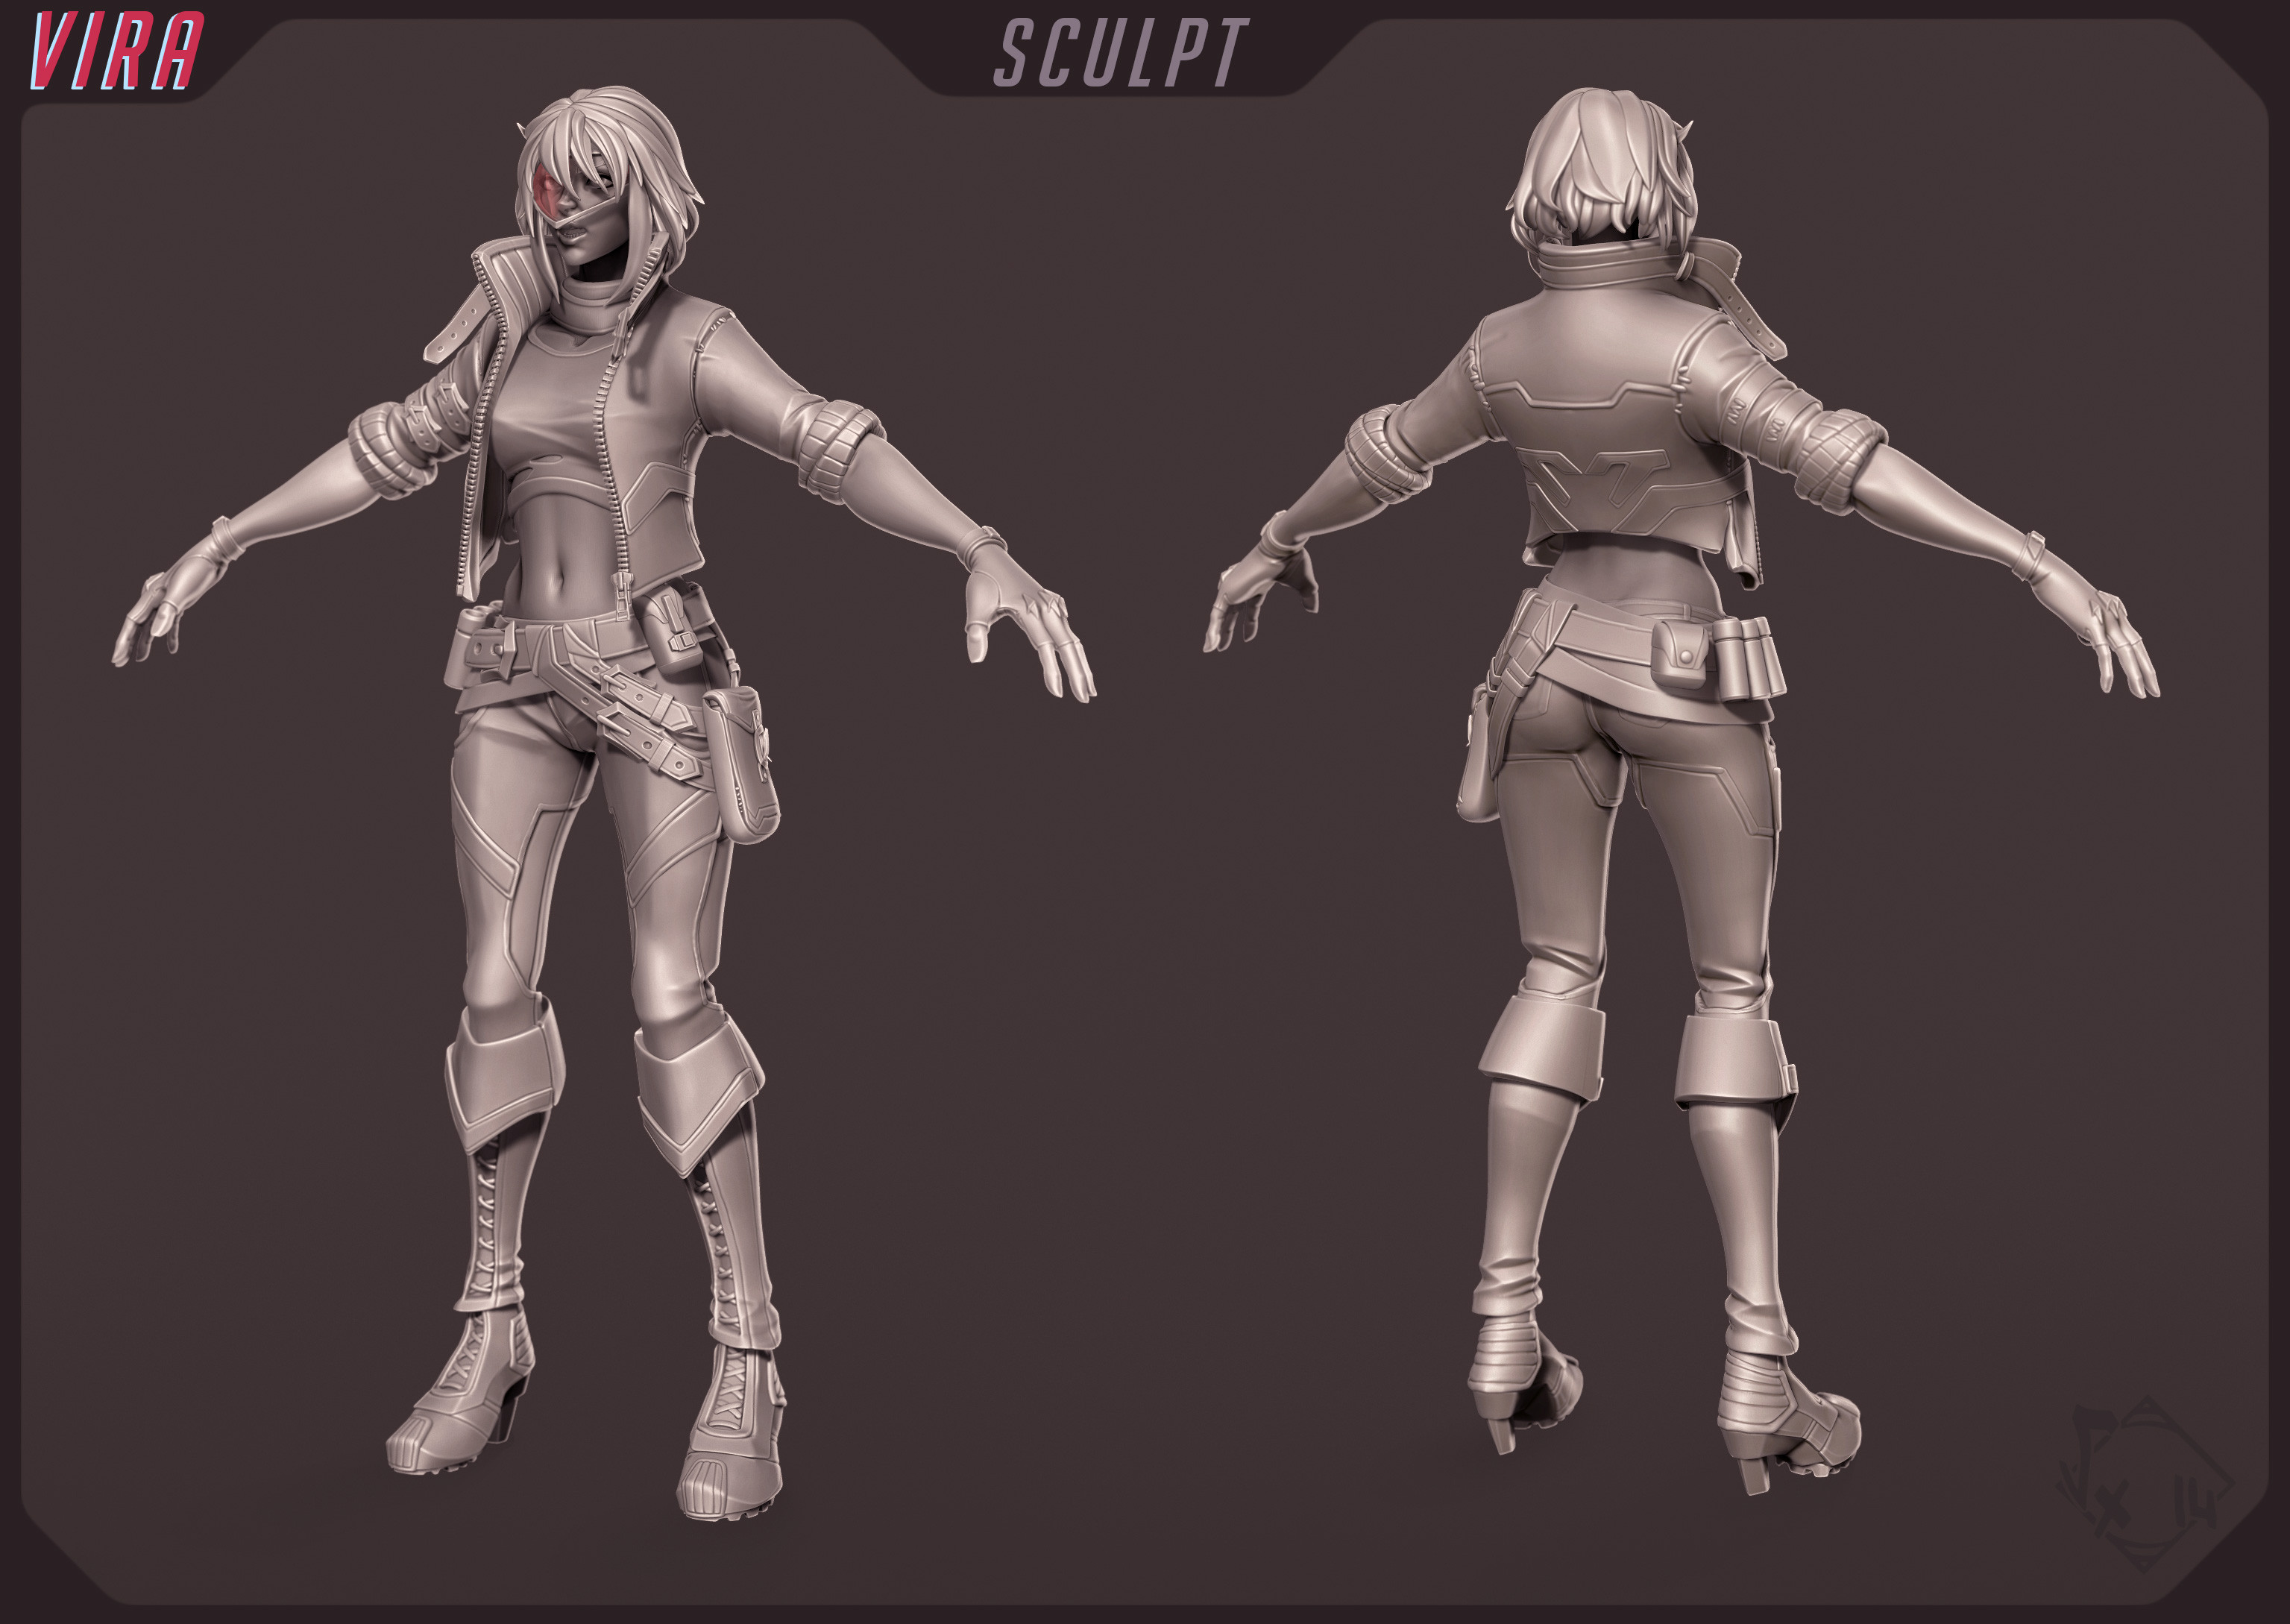 Sculpt, done mostly with ZBrush except a few hardsurface elements (3dsmax then imported as InsertMeshes)